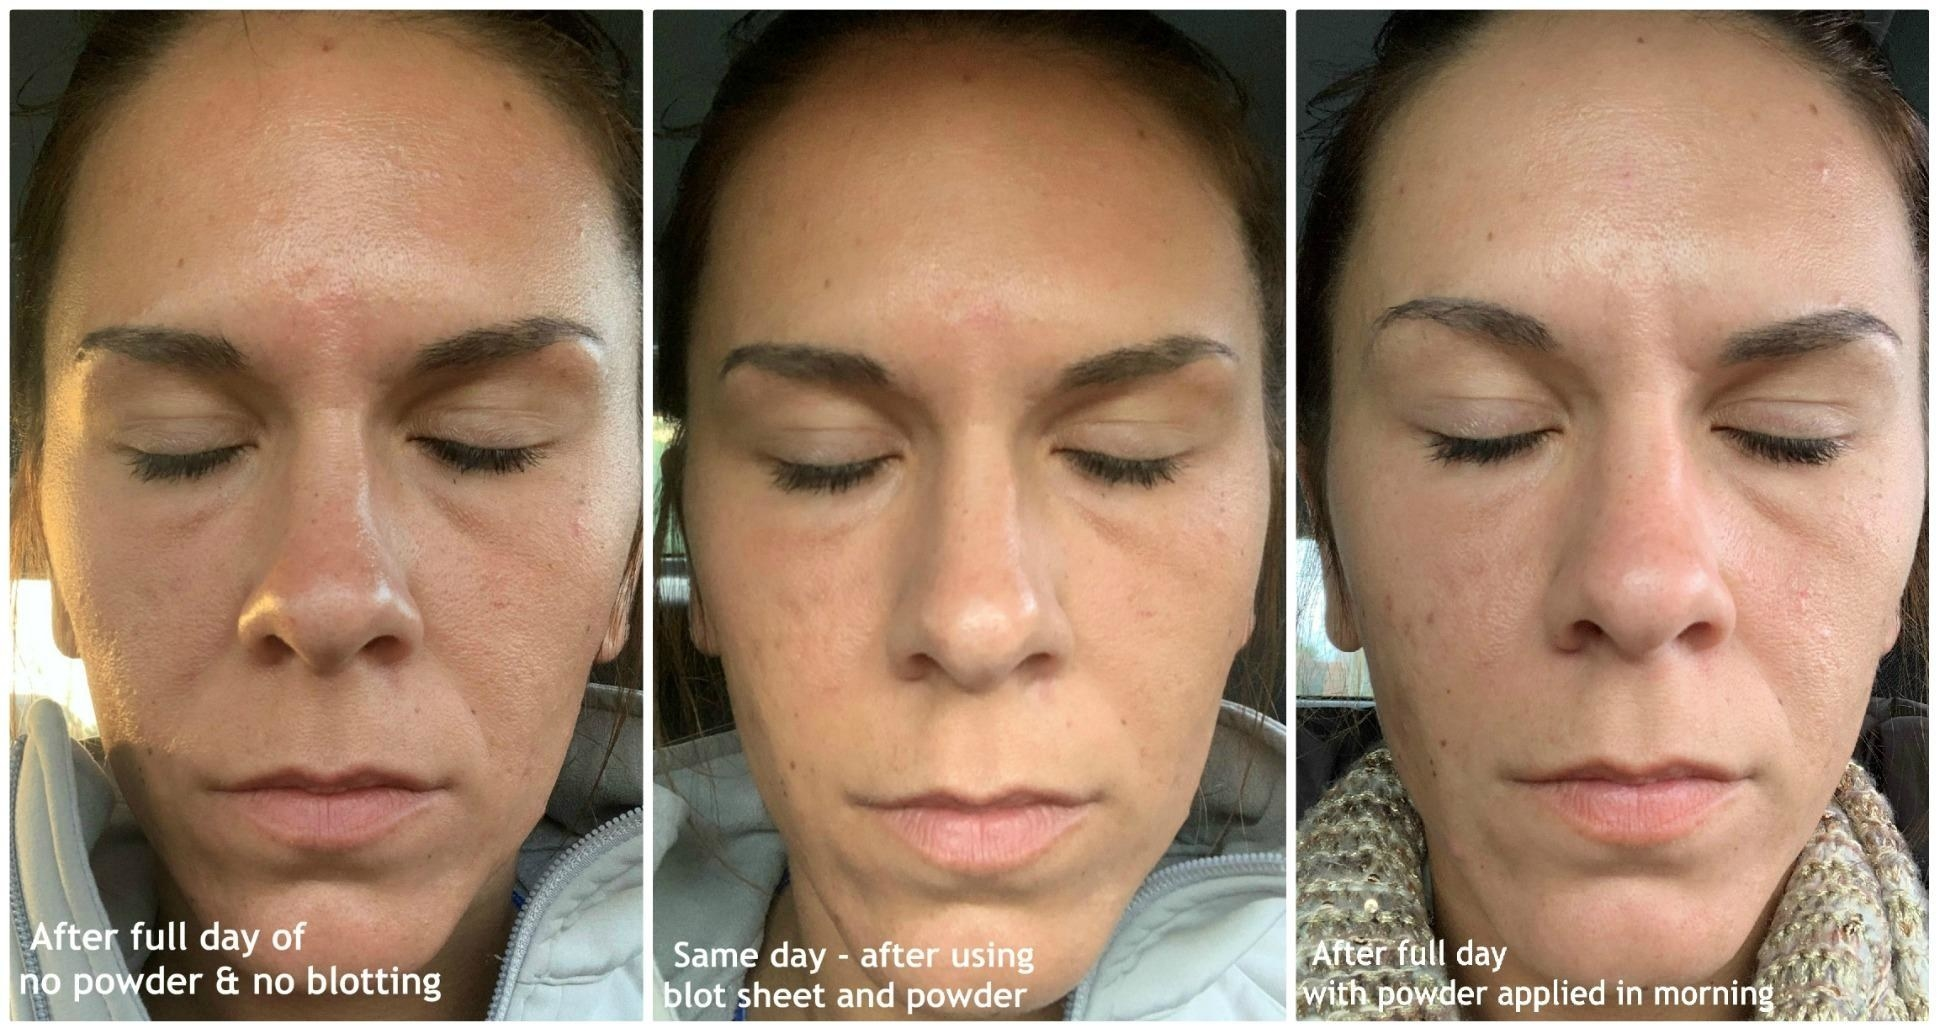 Reviewer progression photos showing that throughout the day their face stayed oil-free